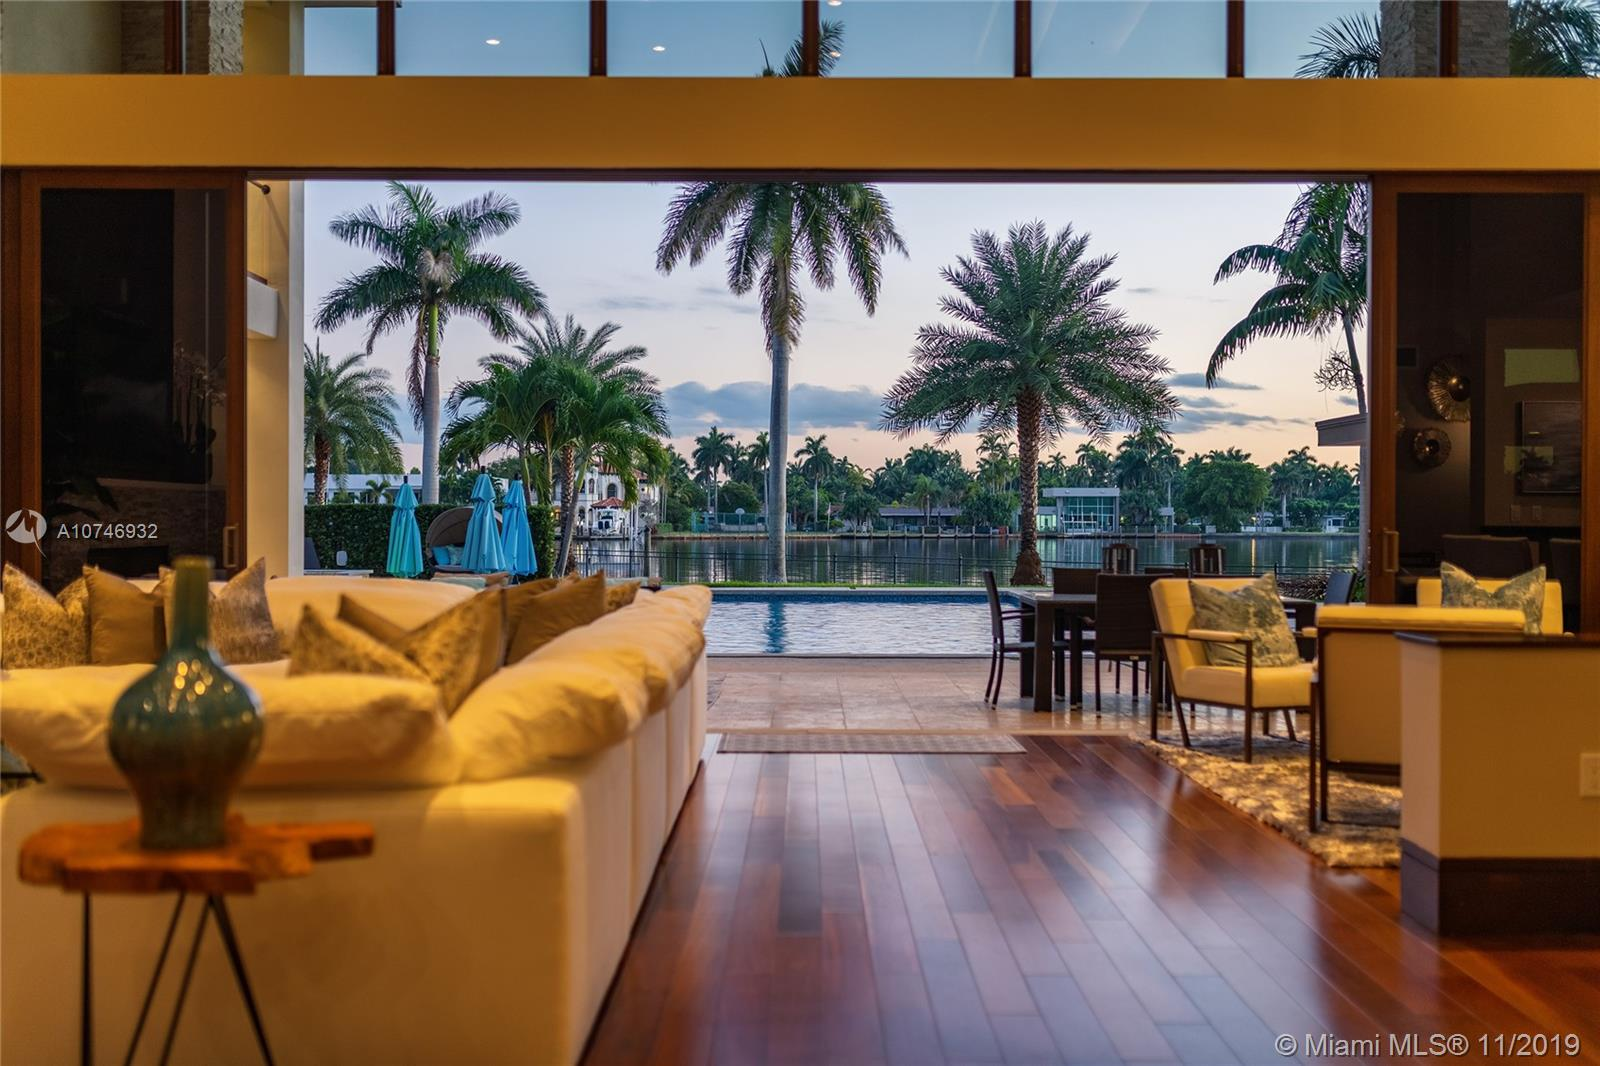 Tropical Modern Estate situated between Miami & Ft Laud. totaling approximately 8k sq. ft., 6 bedrms/6.5 unique baths w/wide water views in every room & resort-style pool w/25k lot.  No fixed bridges, large dock w/20k lbs boat lift & 160' on water.  Summer kitchen, large hot tub, tanning shelf, & fire pit, full bar, gourmet kitchen; Master has a spa bathroom,two water closets & multi-person shower.  All bedrooms have full en-suite baths & 6th bedrm is attached via covered walkway & use as a gym, office or in-law suite.  Windows & massive sliders are hurricane-impact & UV protected, the walls are concrete block construction & 2nd story has concrete floor. 5 AC zones, fireplace in living area & master bedrm & Crestron lighting systm.  3 car garage,ample guest parking in governor's drivewy.